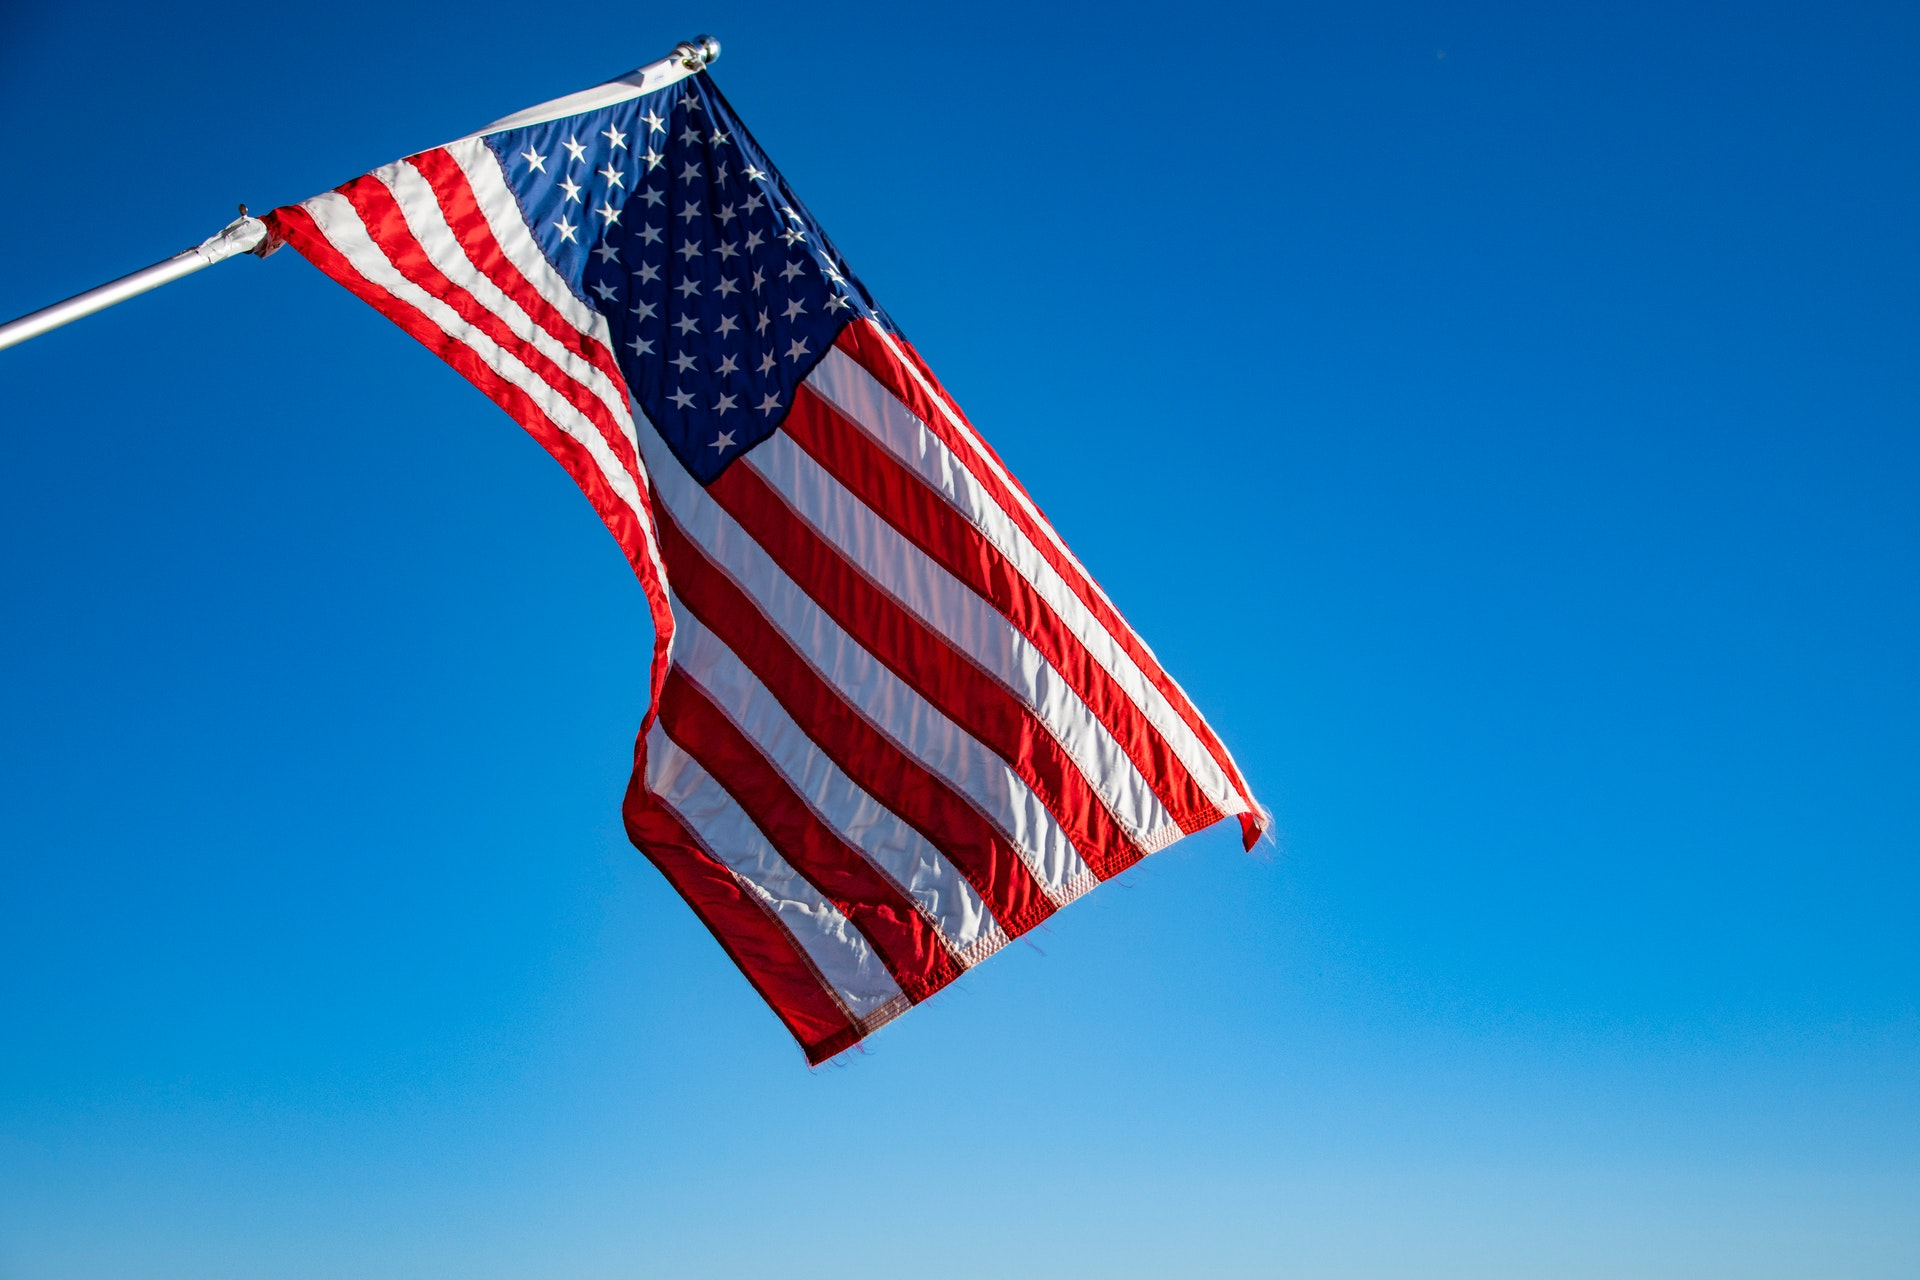 On this Independence Day, a reminder of America's founding principles